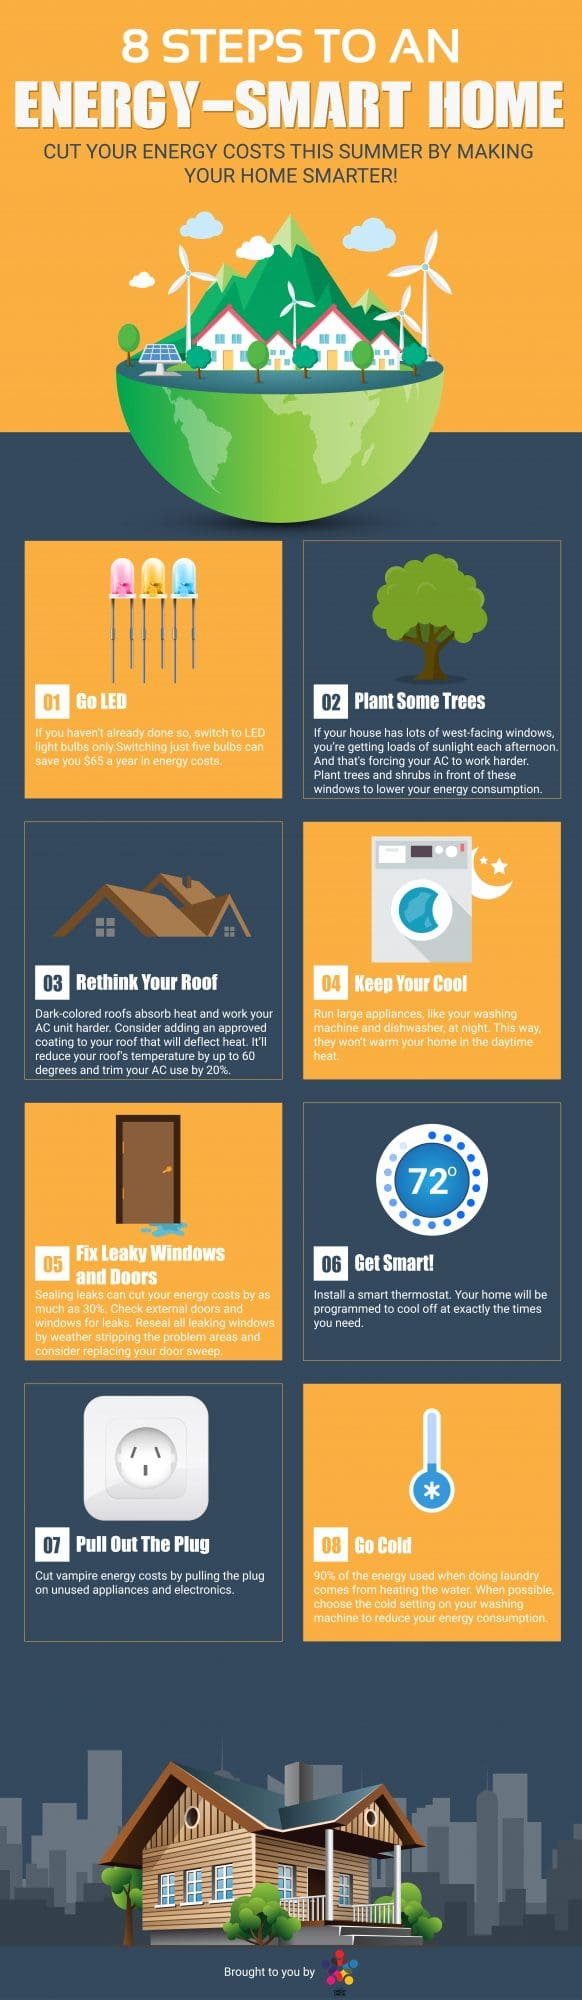 8 Steps to an energy-smart home. View text next to graphic.